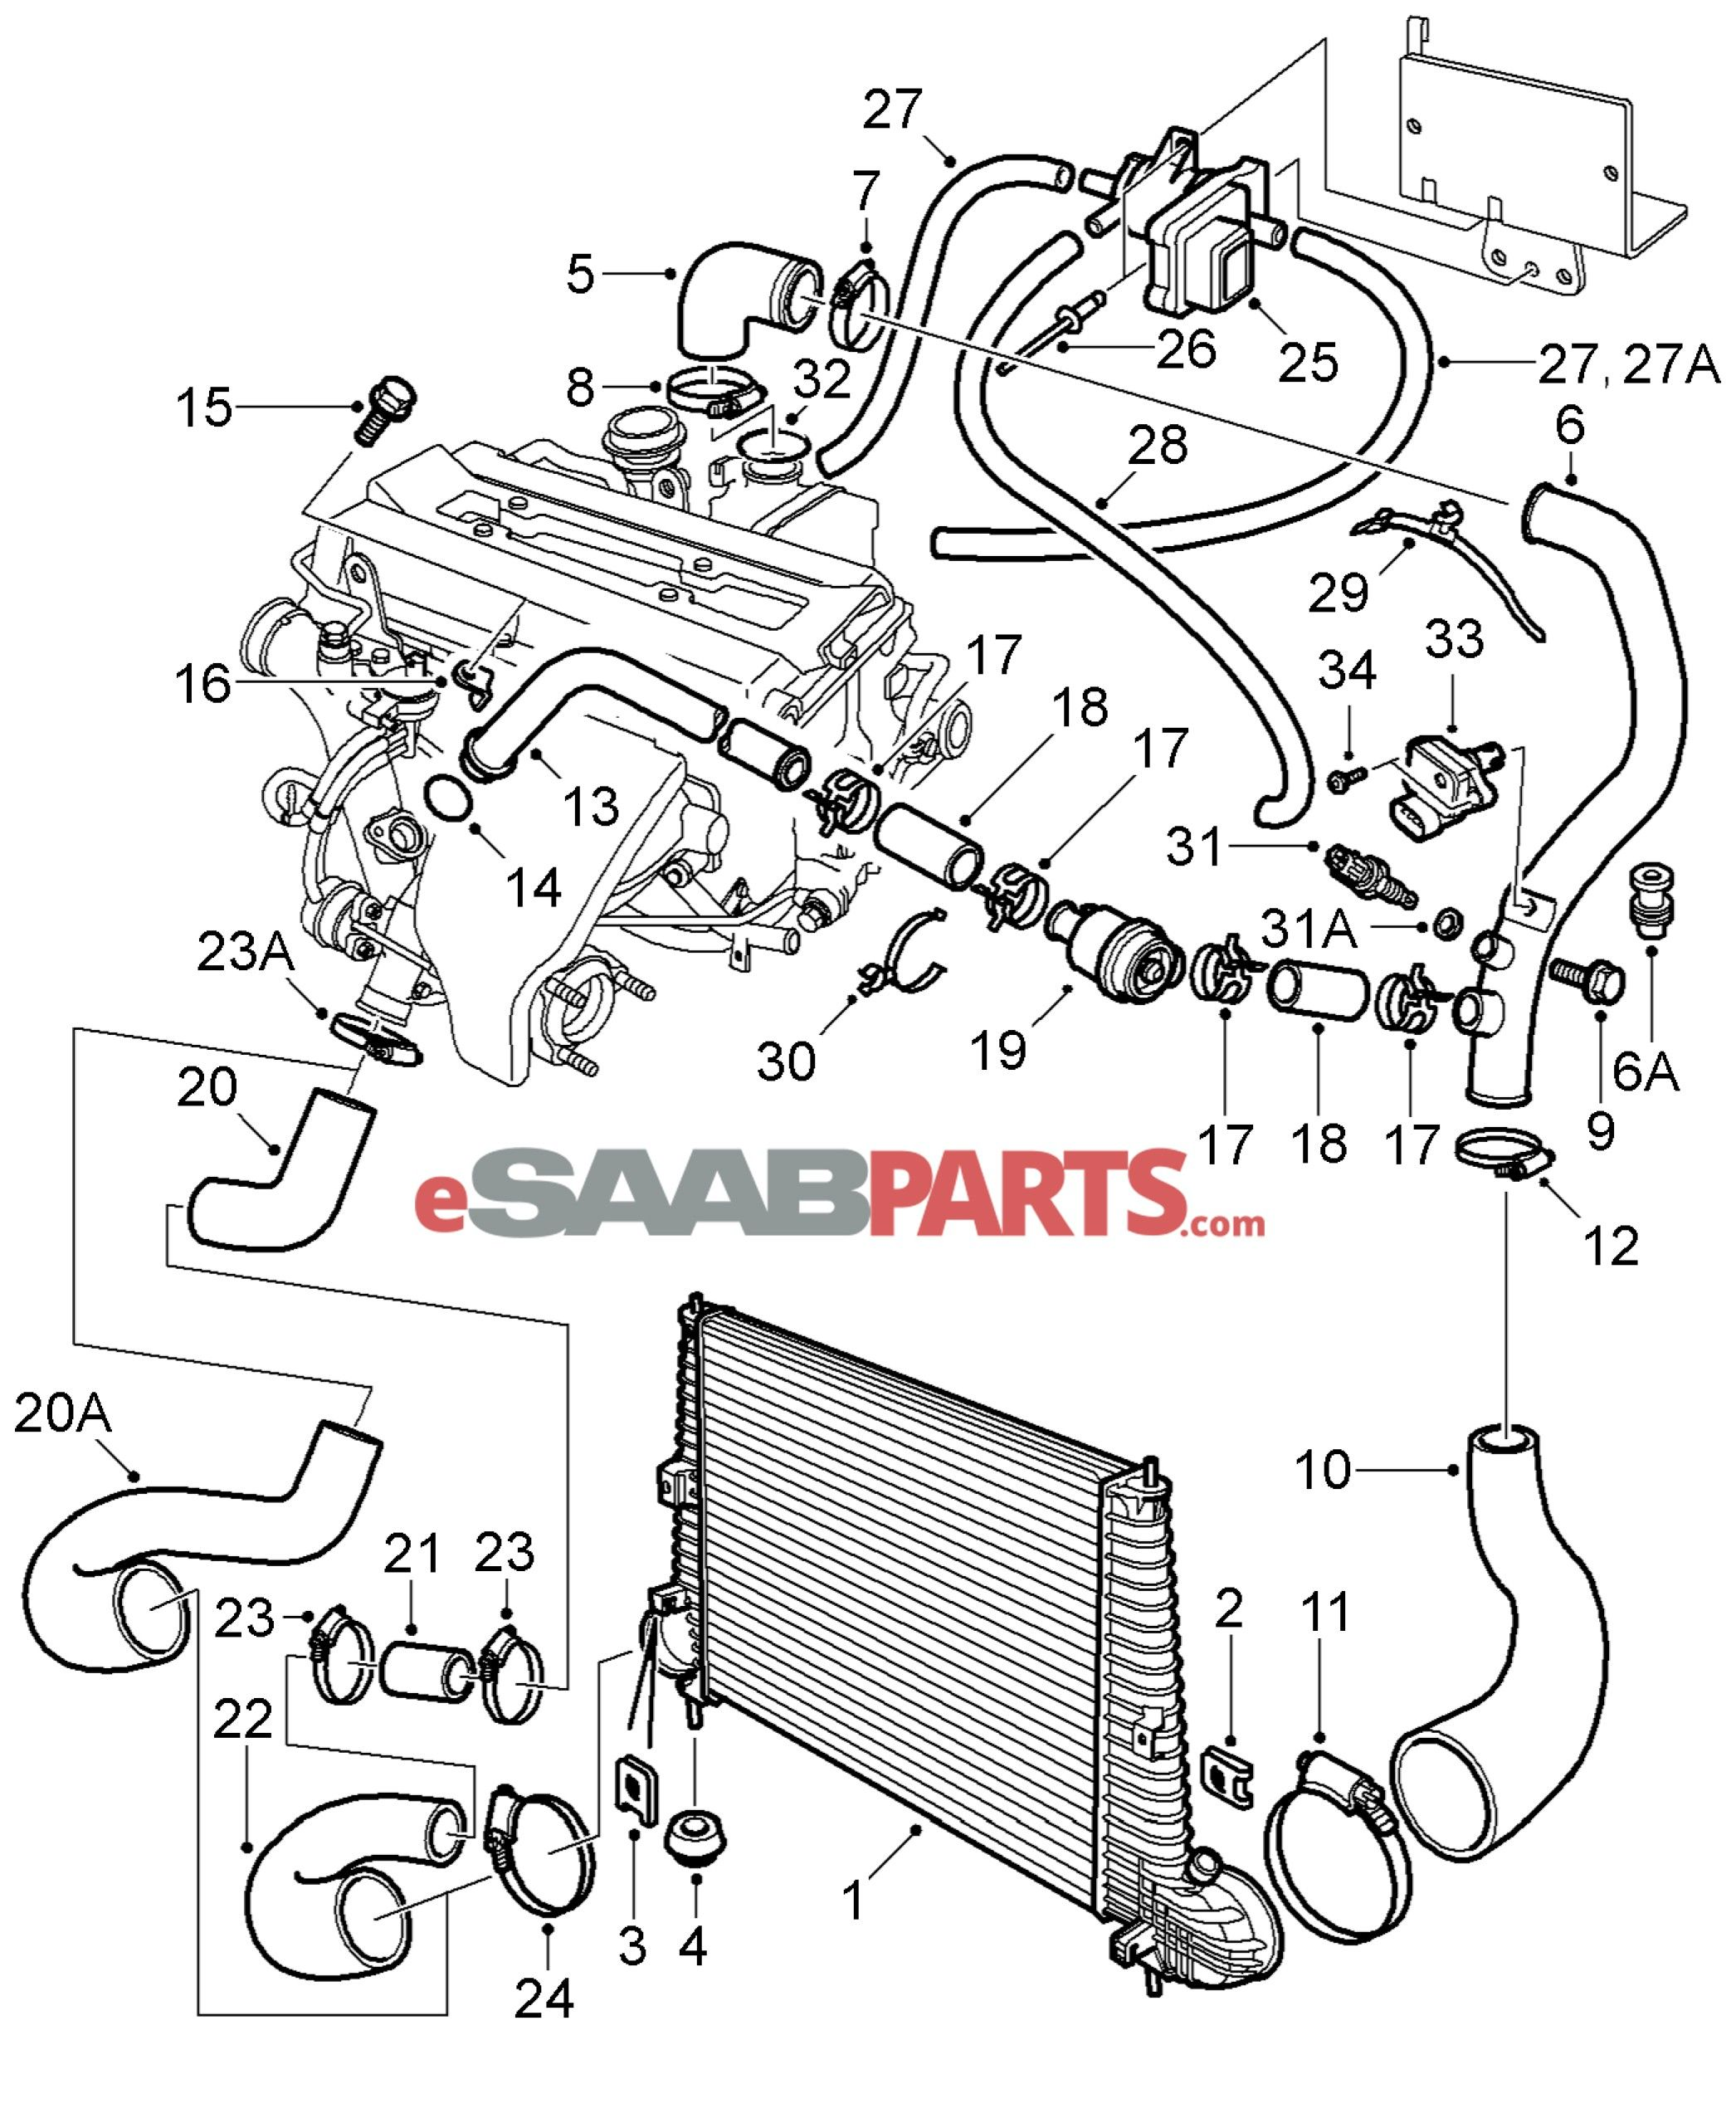 likewise saab 9 5 repair manual on 2007 saab 9 3 engine diagram 1976 Triumph TR6 Wiring-Diagram wiring diagram 99 saab wiring diagram rh 28 vgc2018 de